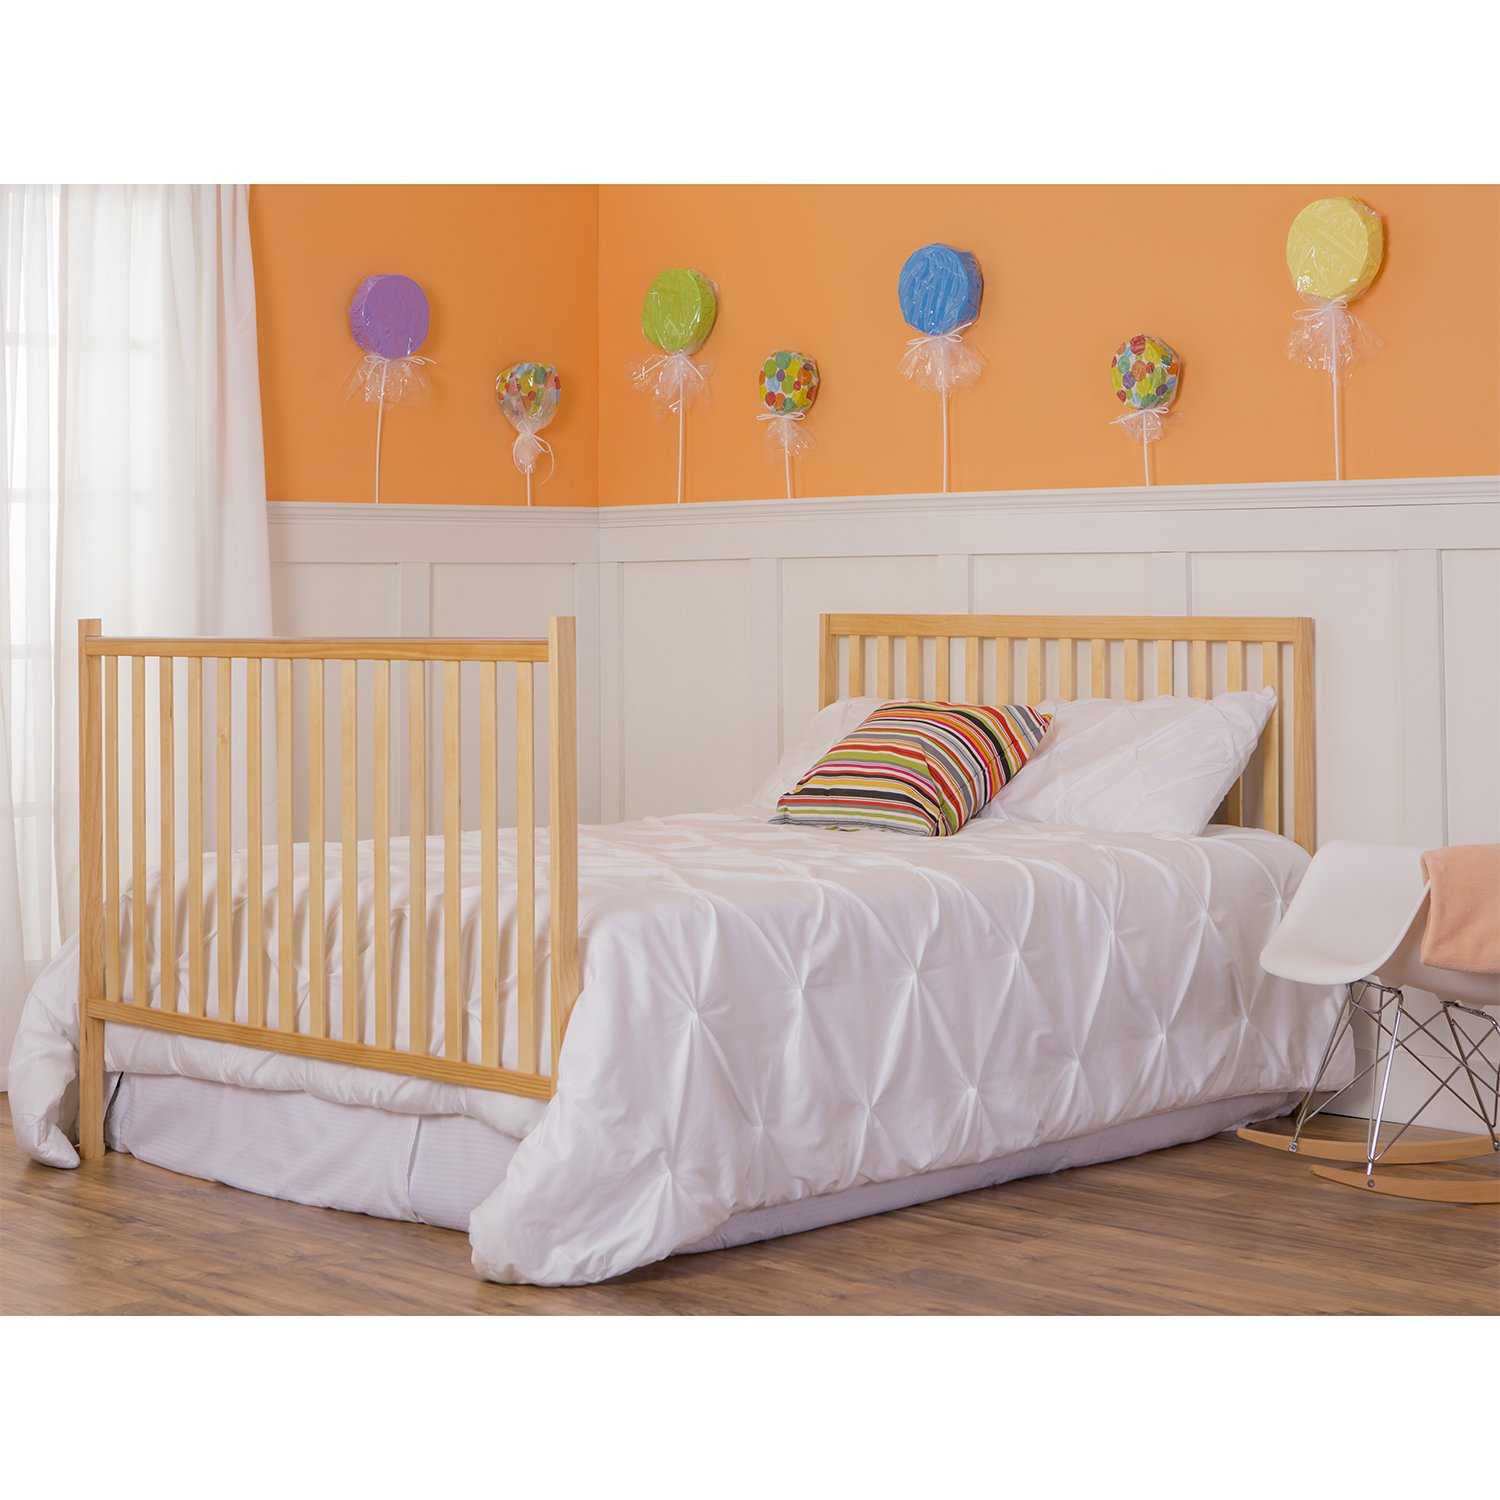 Dream On Me Synergy 5-in-1 Convertible, Crib, Natural by Dream On Me (Image #6)